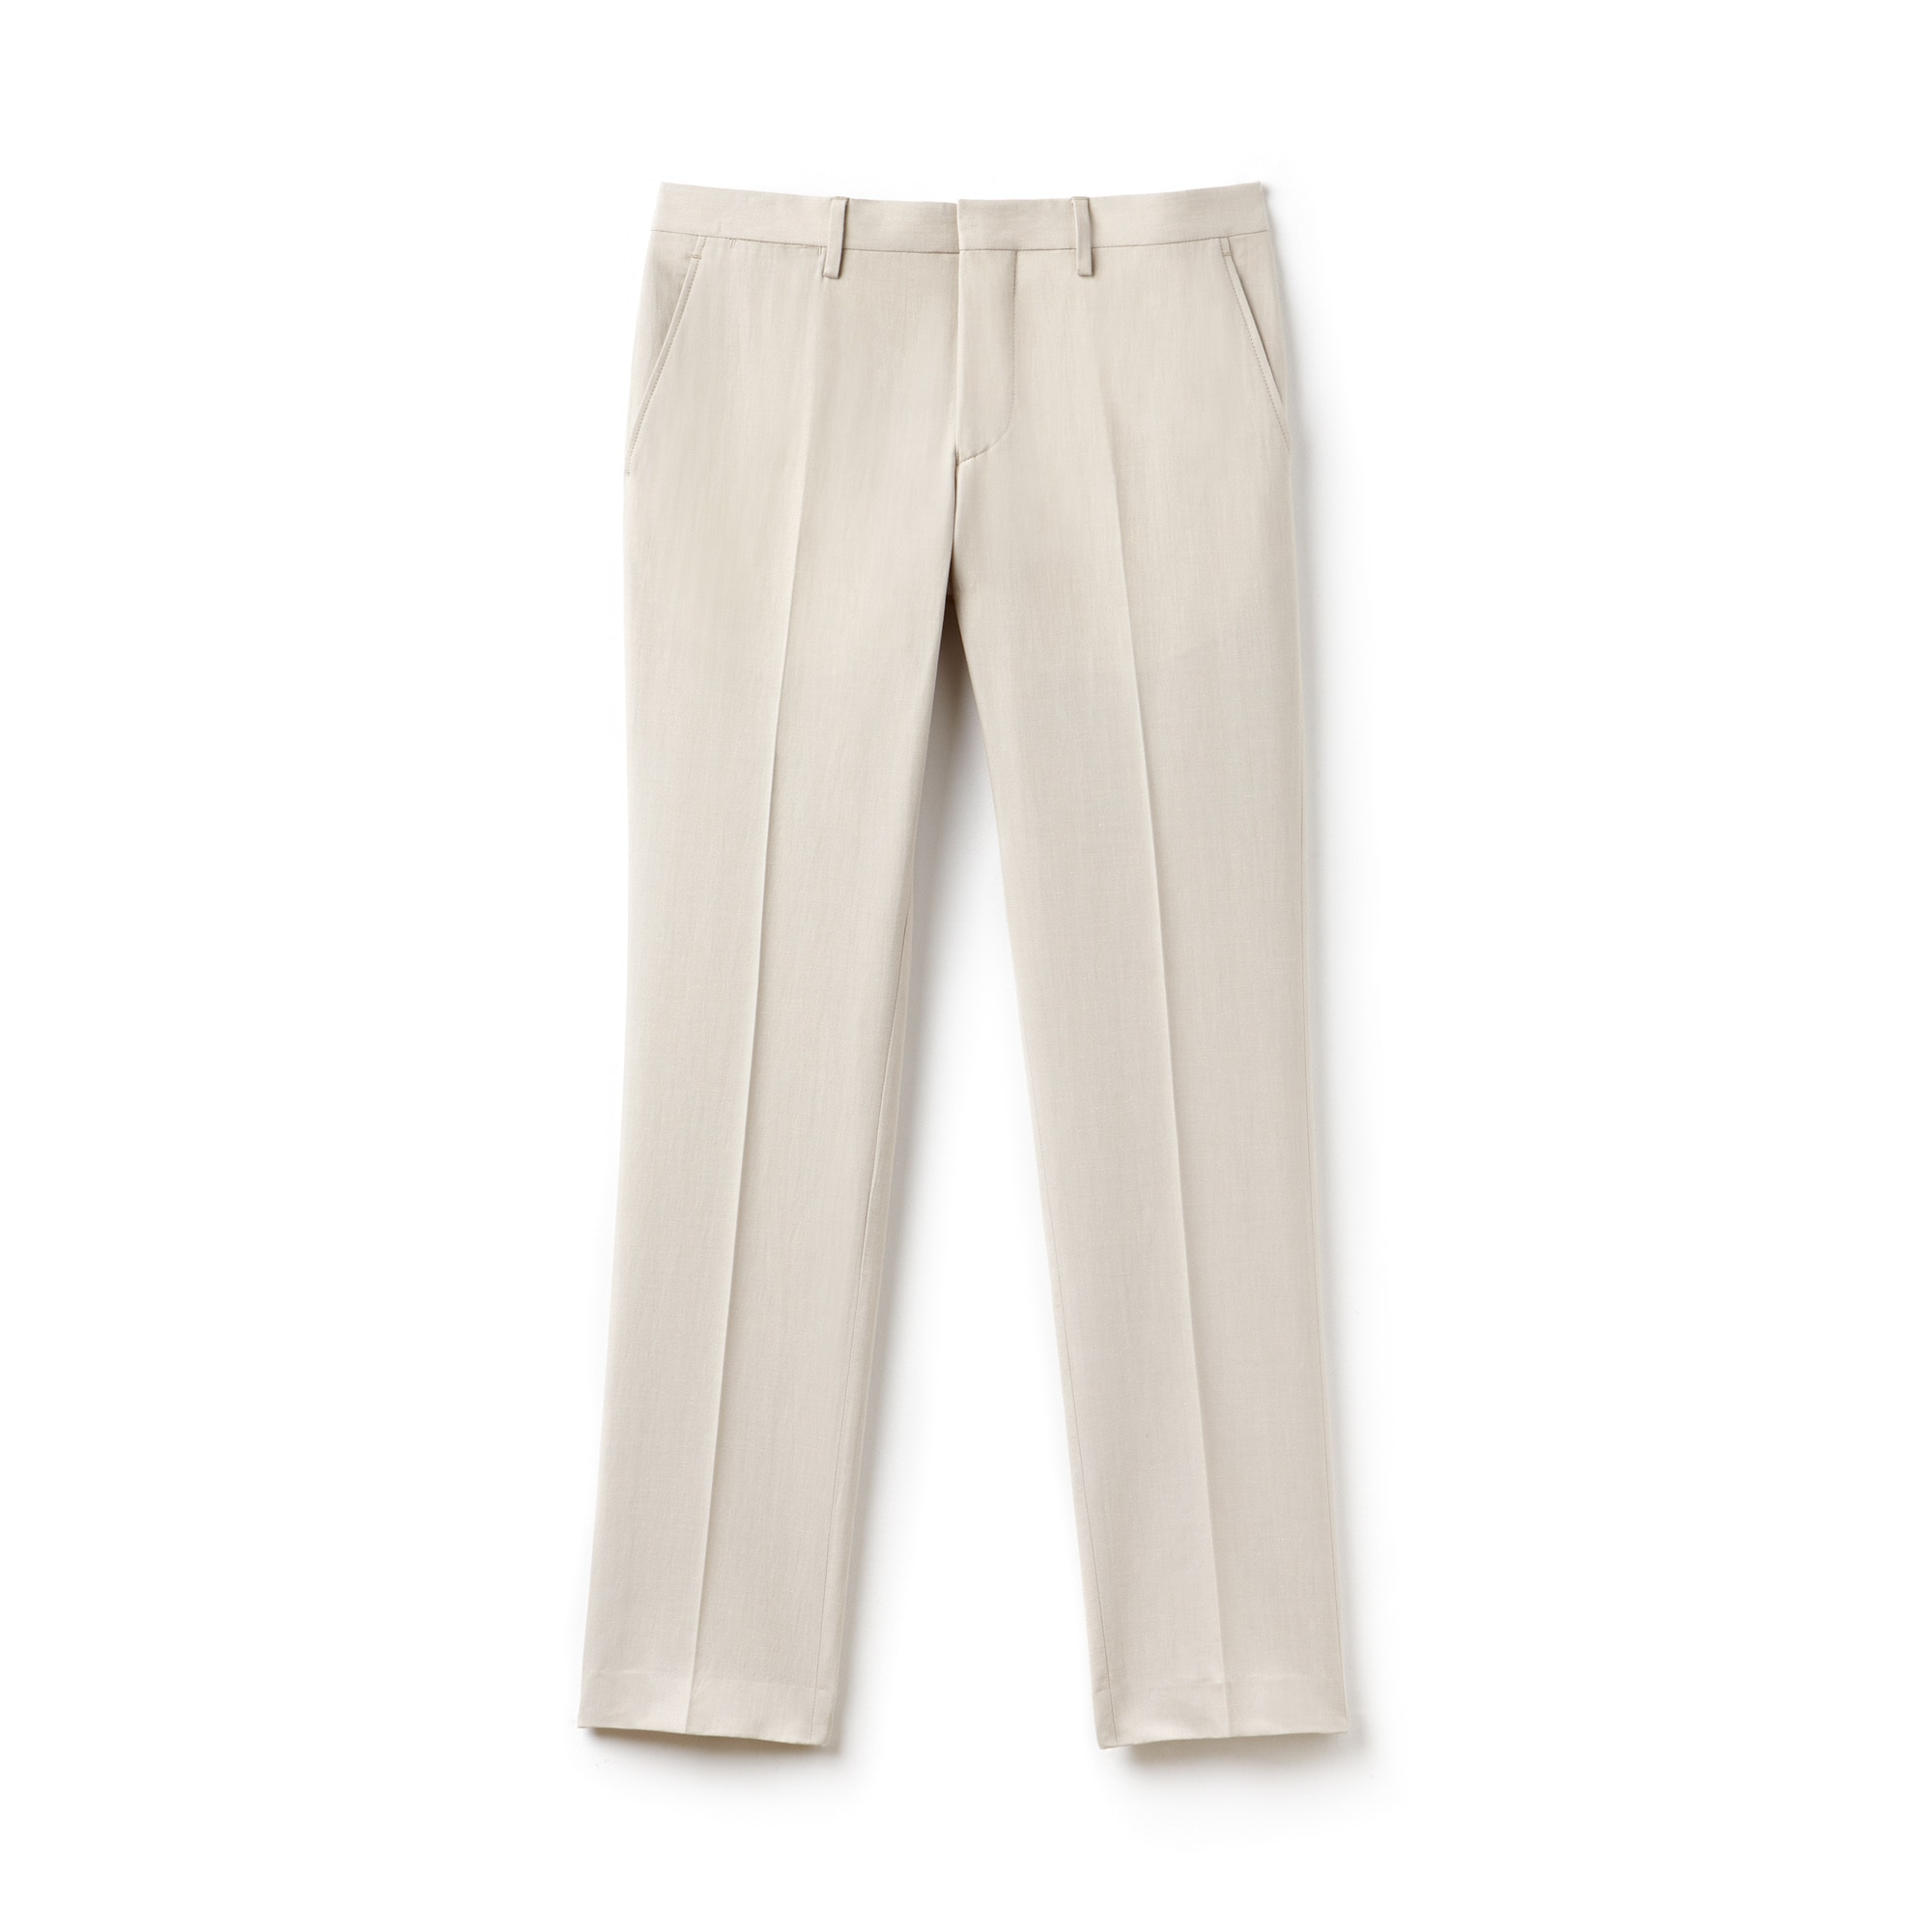 Men's Slim Fit Pleated Pants